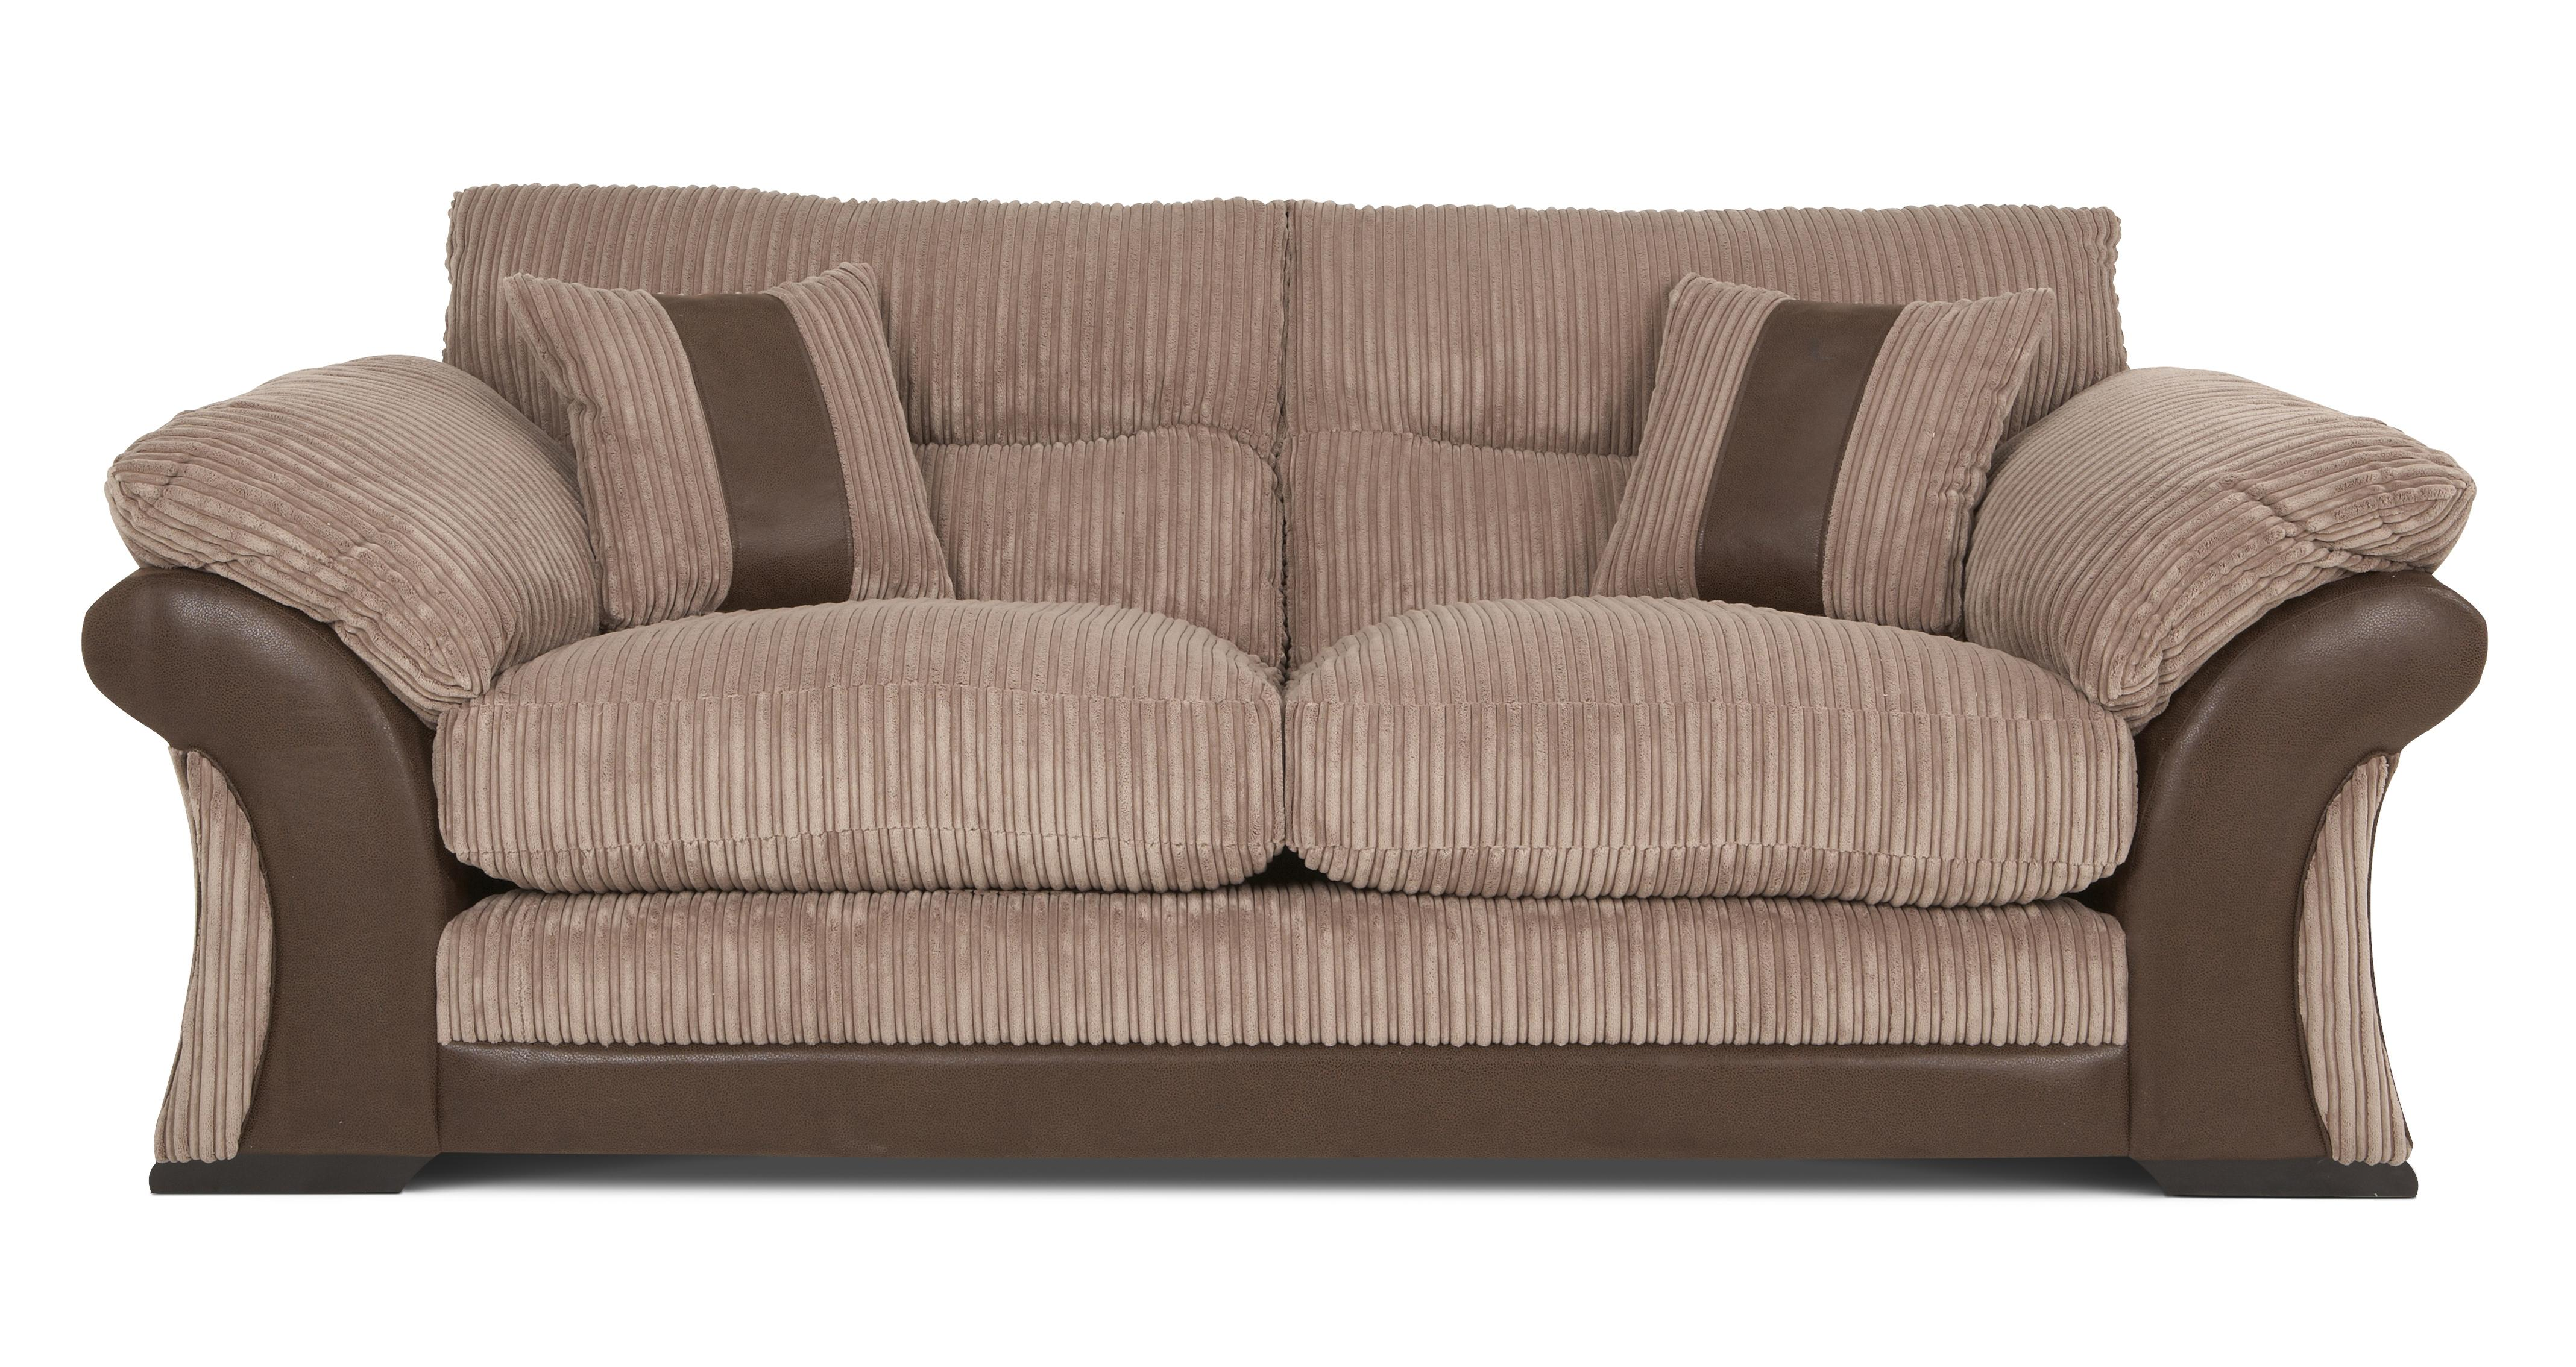 new sofas dfs sofa bed queen size dimensions fabric album 3 seater with